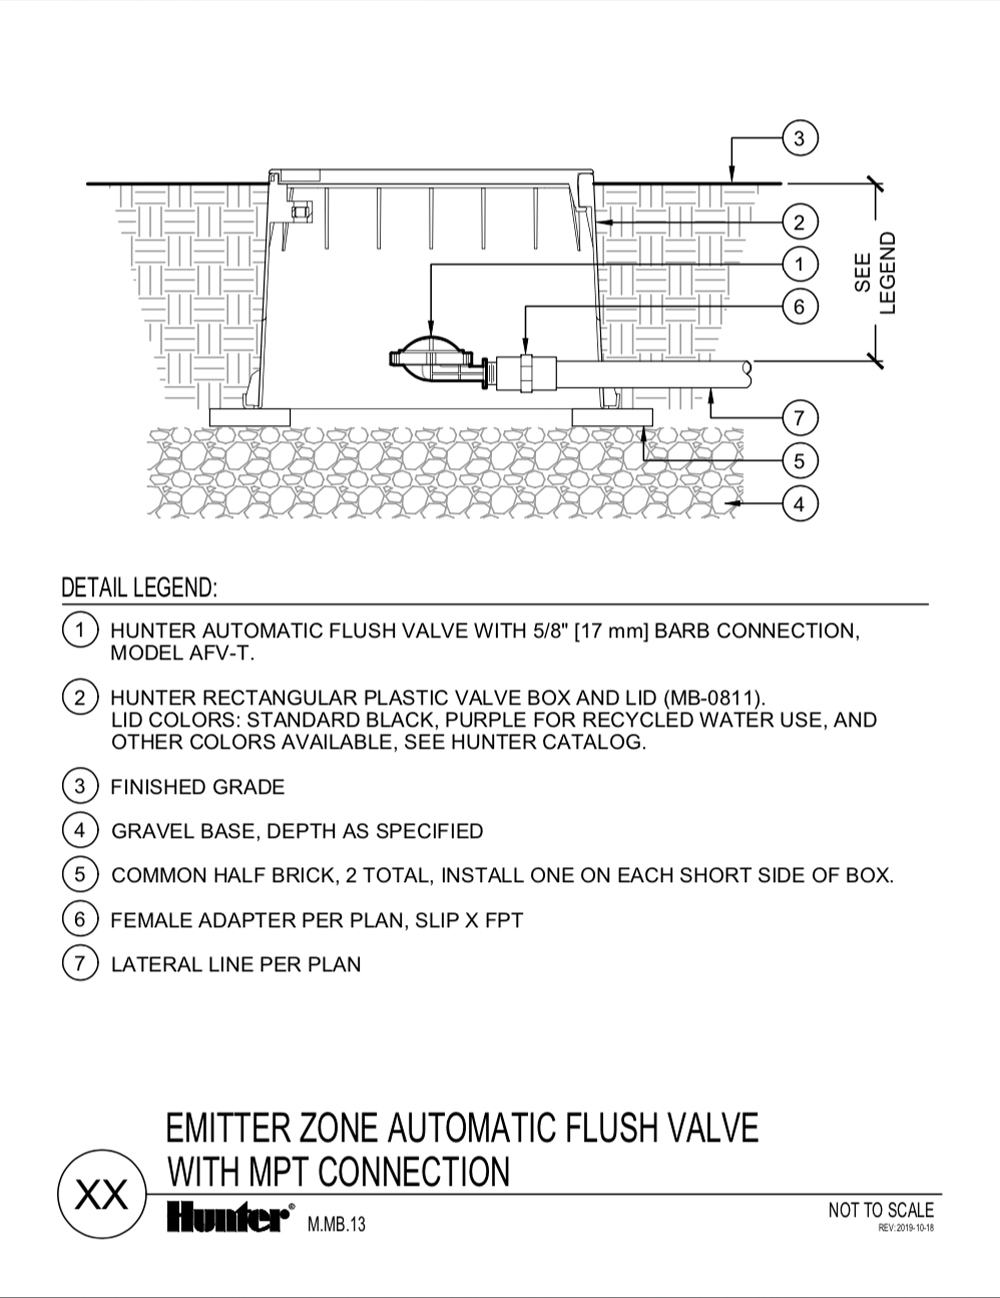 CAD - Automatic Flush Valve with MPT Connection